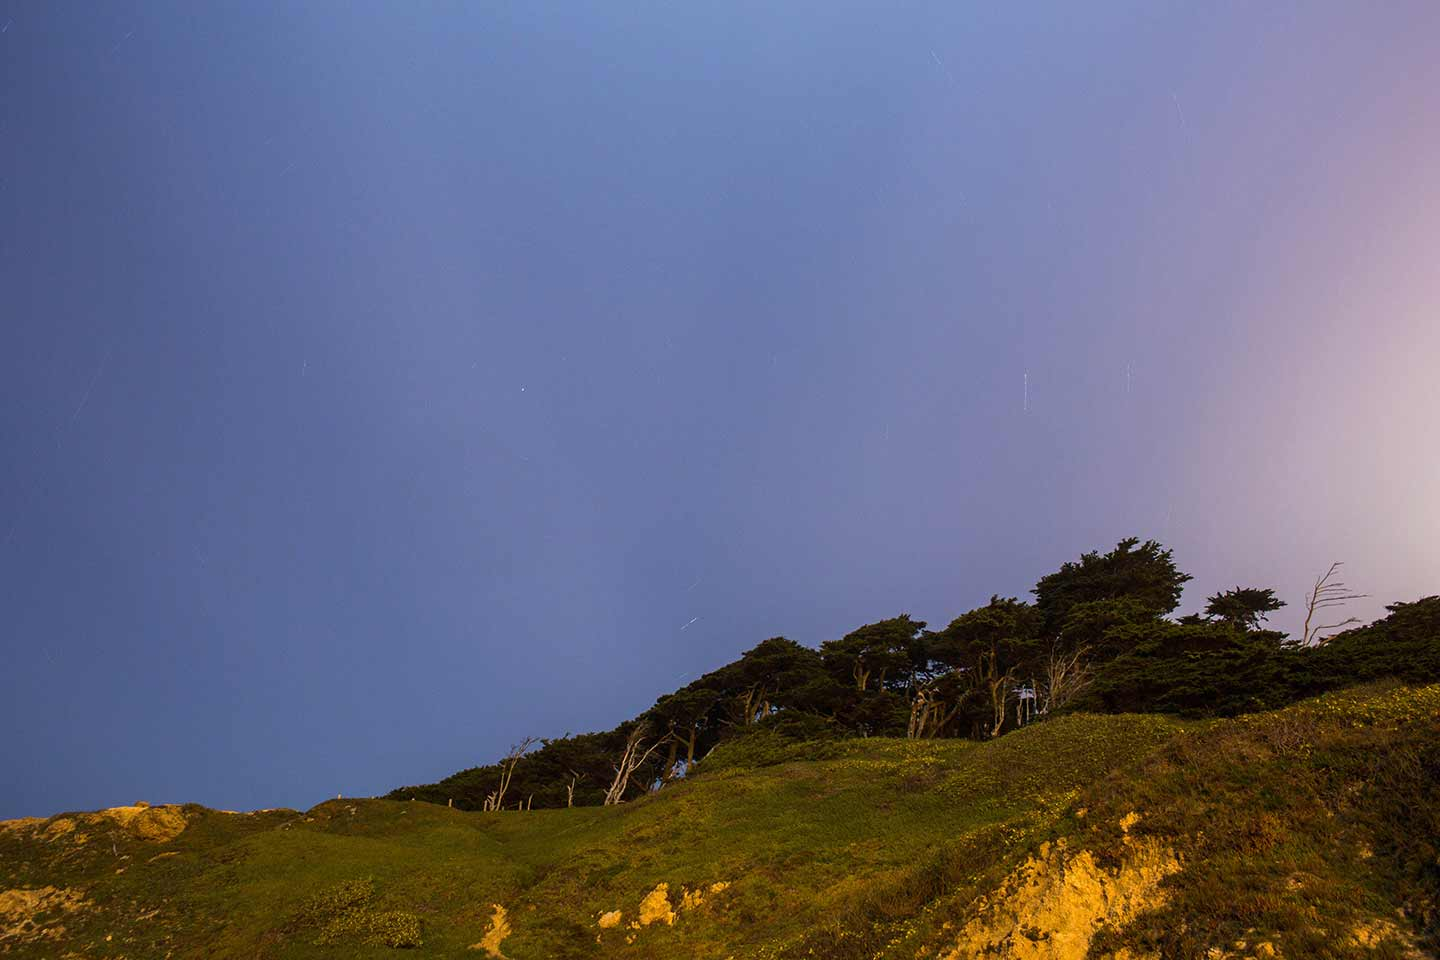 Photo of a dusk skyline above a grassy rockface covered in trees.